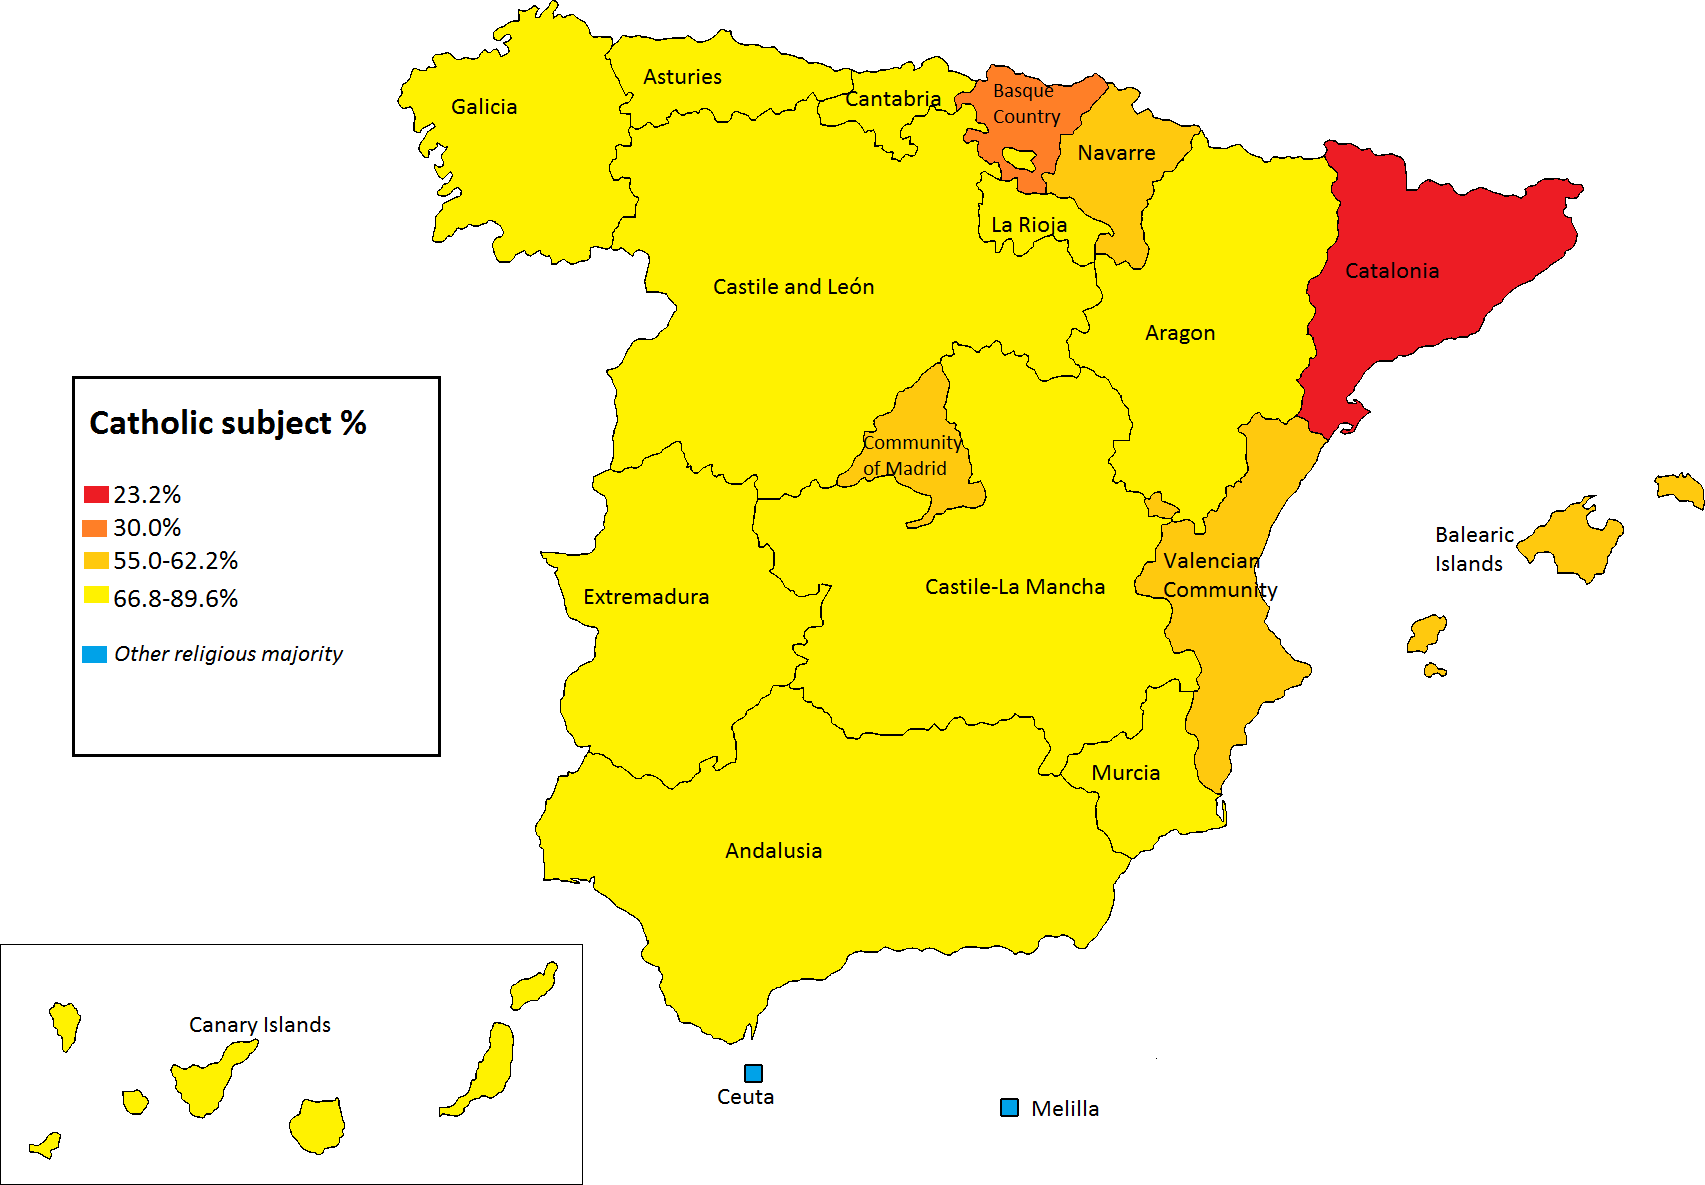 percentage of students in spain studying catholic religion in public elementary schools by autonomous community